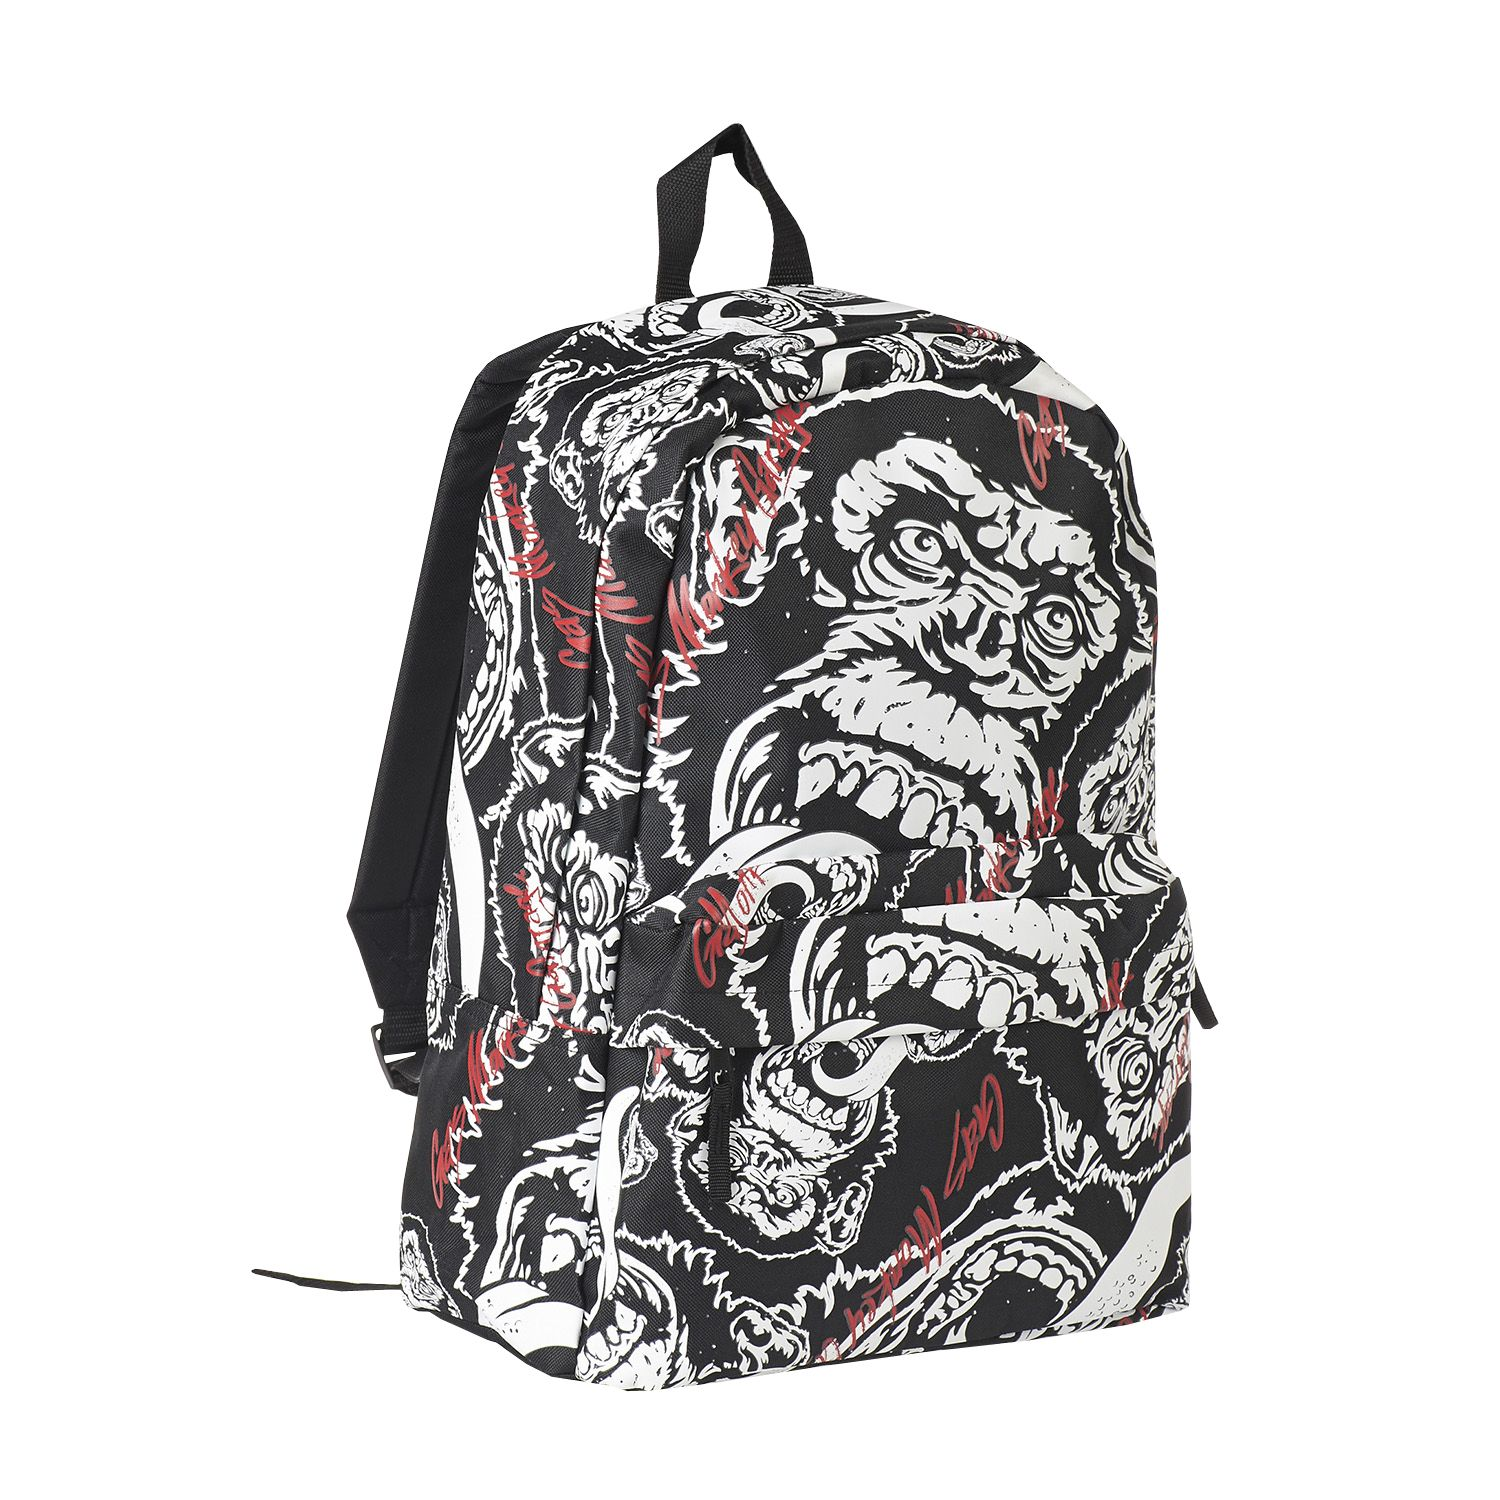 Gas monkey garage gas monkey pinterest garage monkey and gas - Gas Monkey Garage Backpack By Concept One Accessories